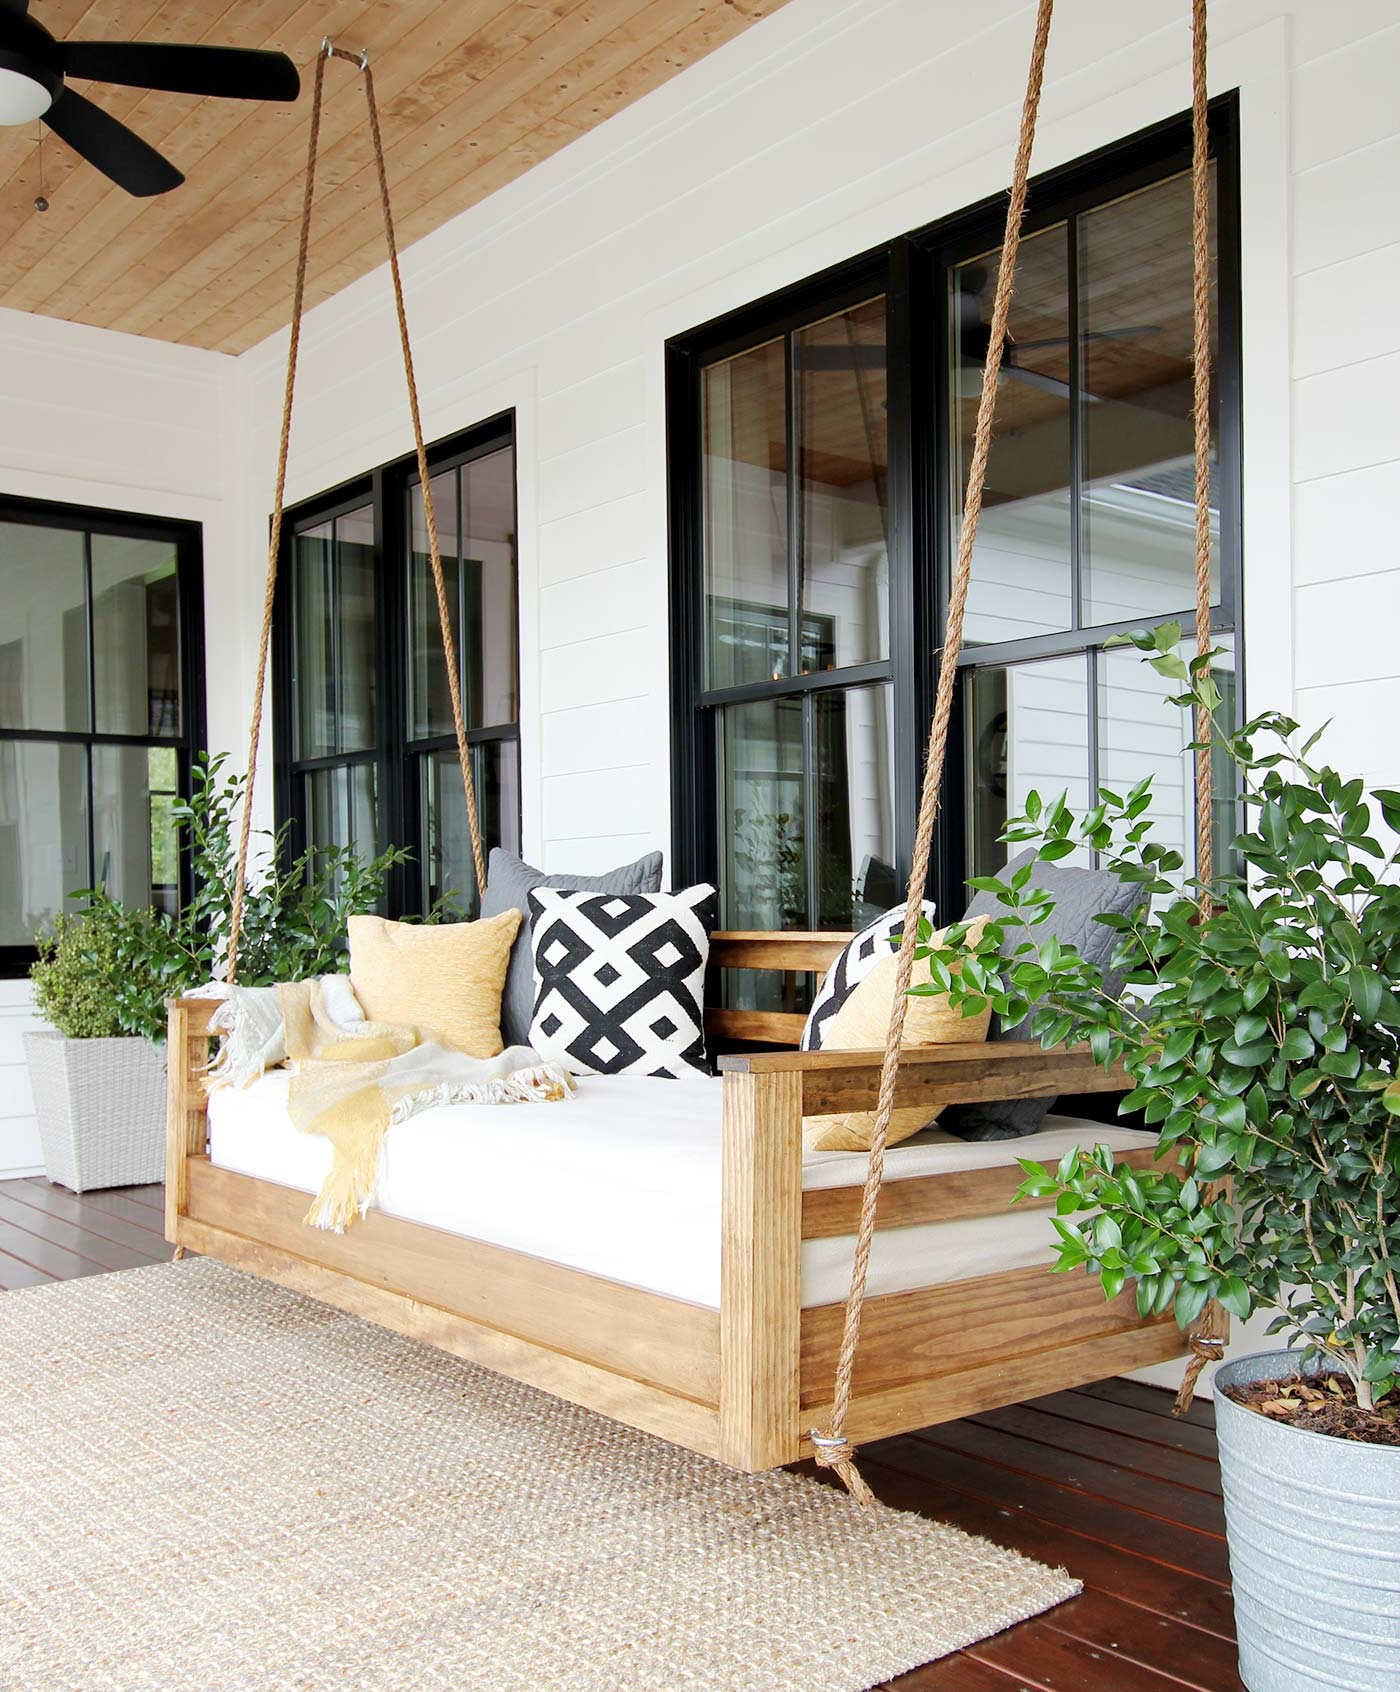 How To Build A Porch Swing Bed Plank And Pillow